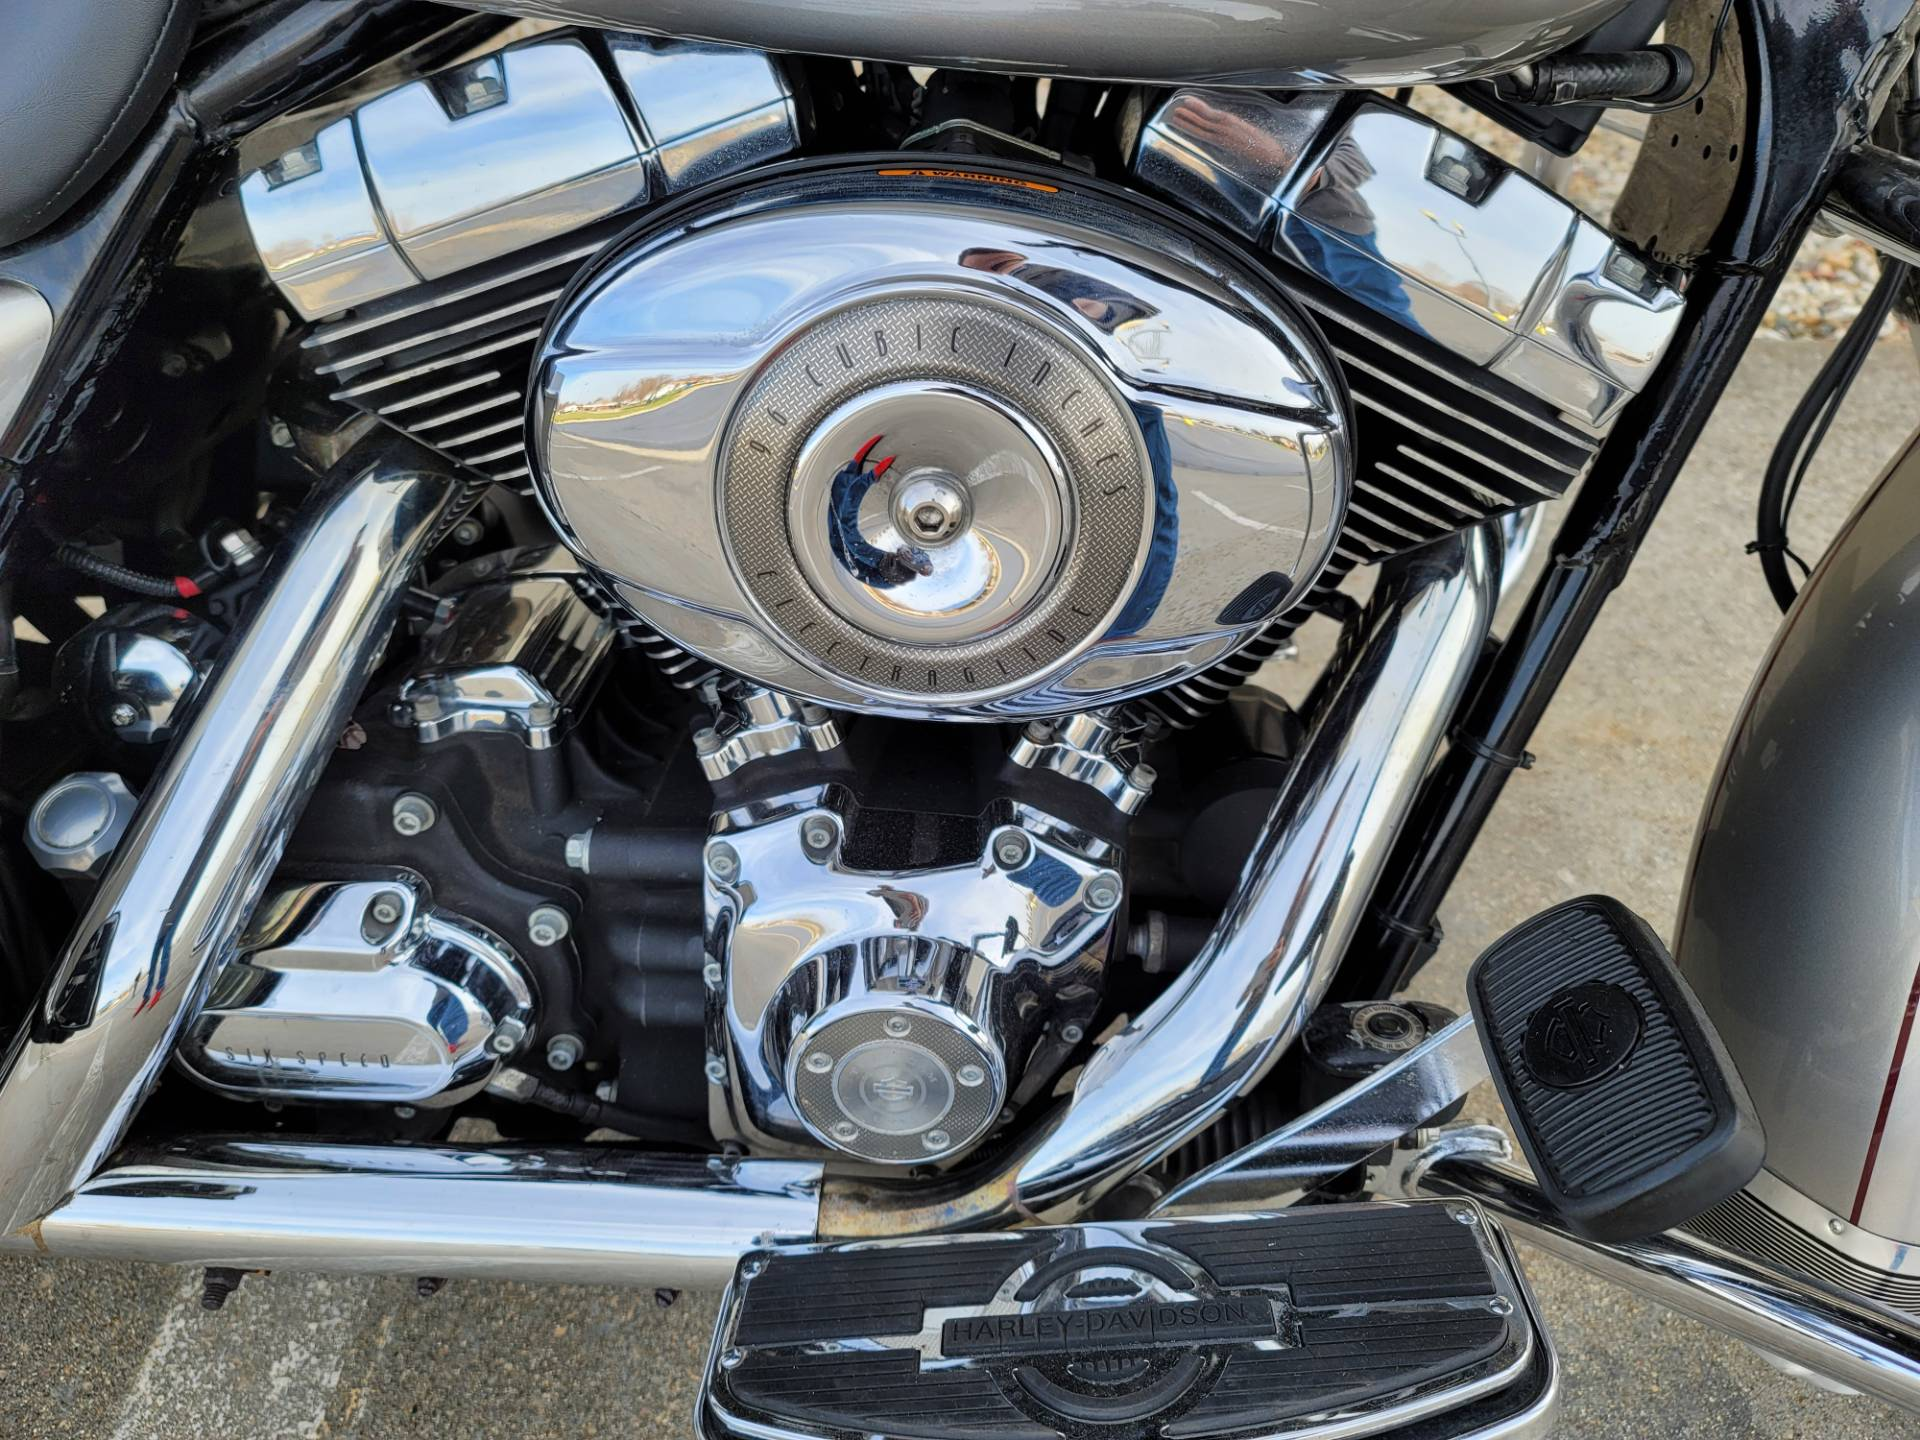 2007 Harley-Davidson Electra Glide® Classic in Rock Falls, Illinois - Photo 6